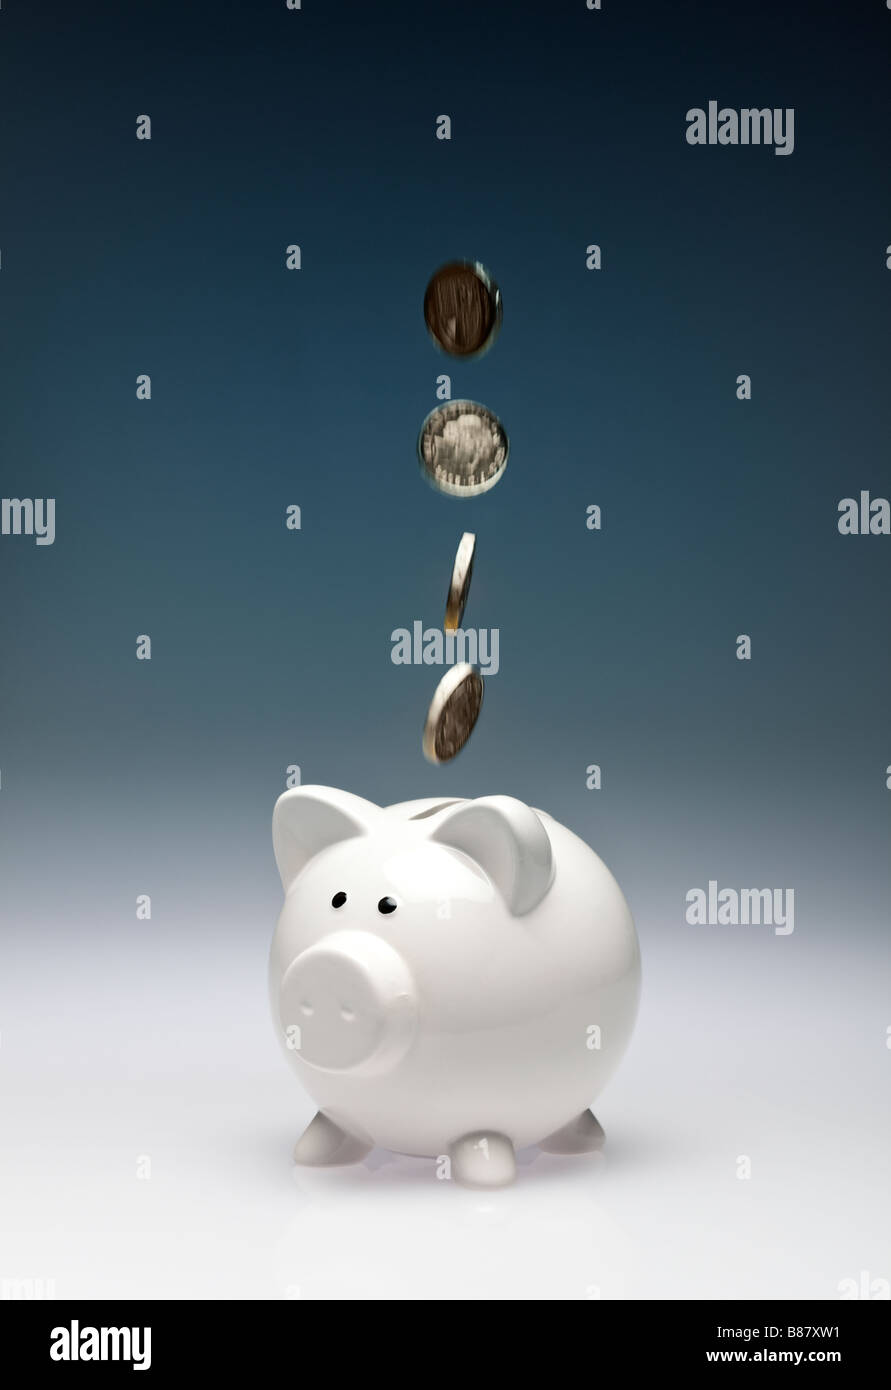 Concept finance saving - Pound coins sterling falling into a piggy bank - studio - Stock Image